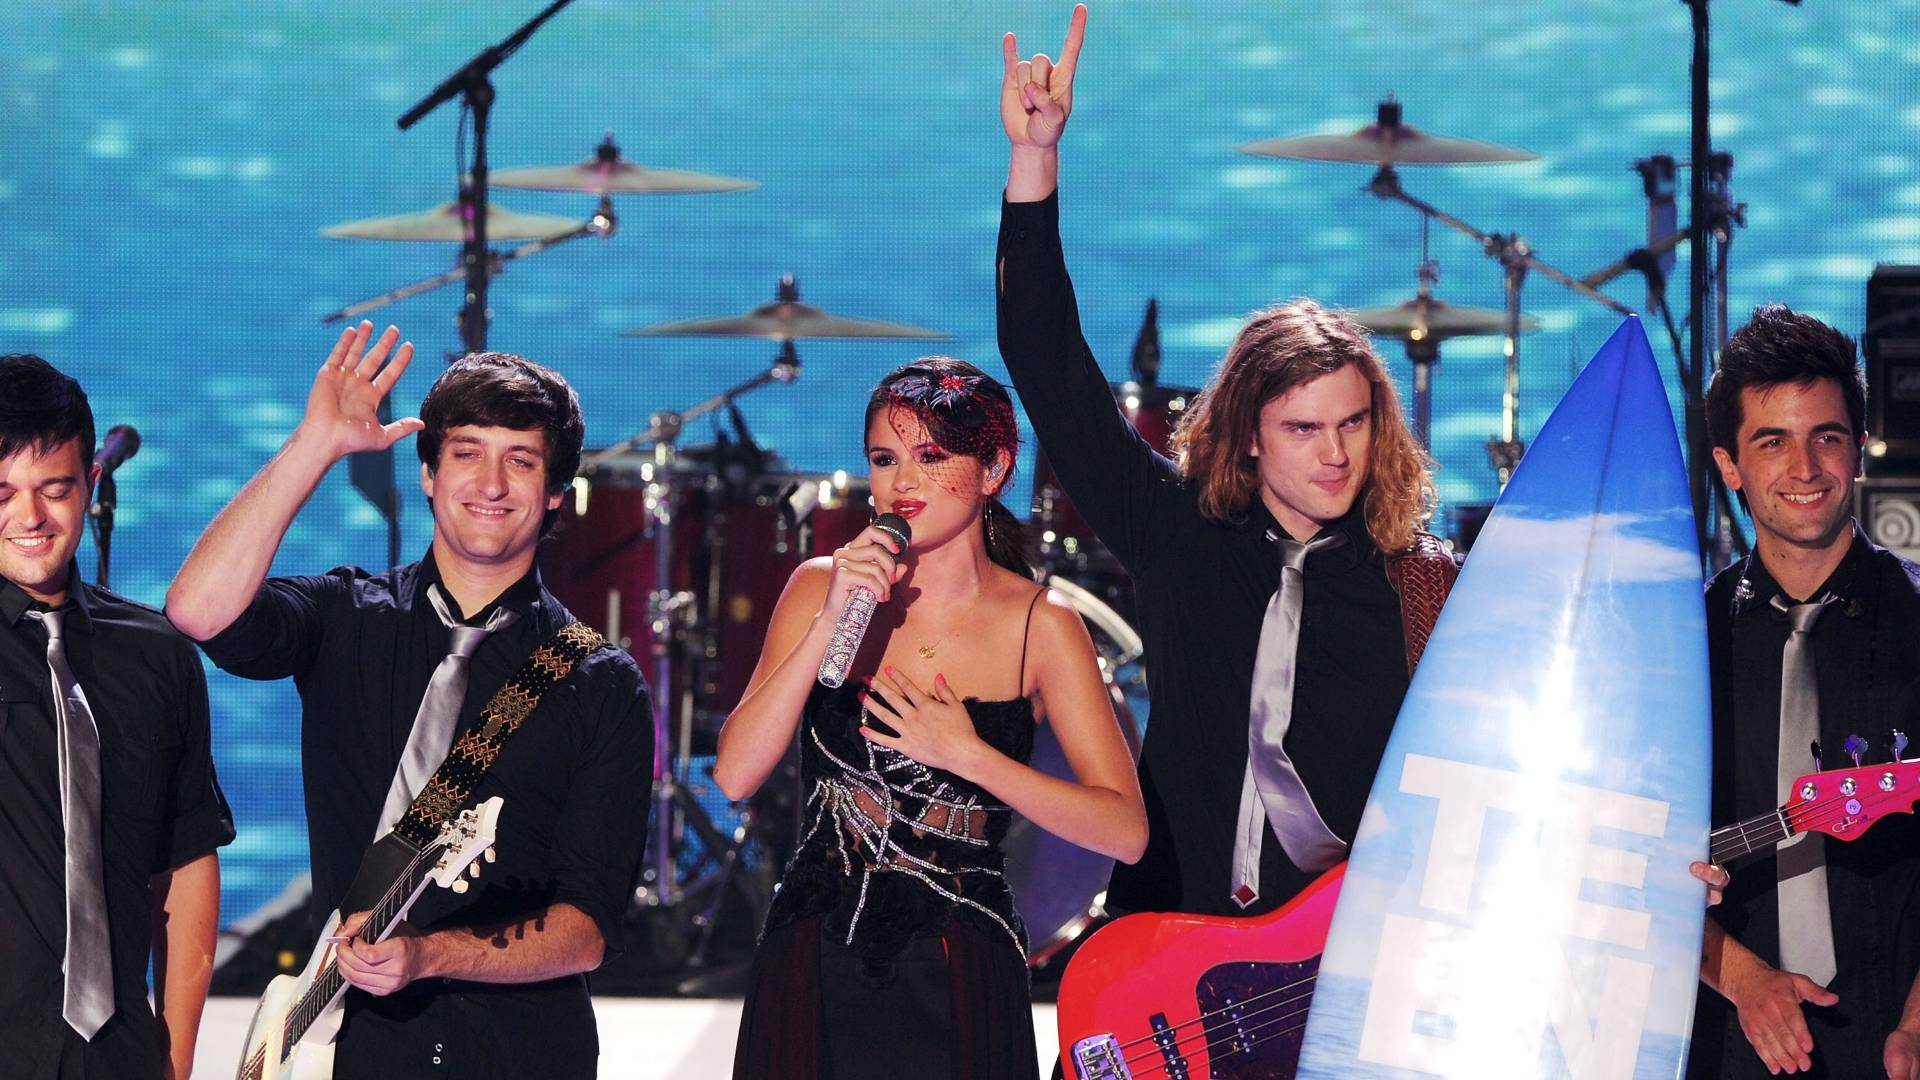 Selena Gomez e seu grupo, The Scene, agradecem prêmio do Teen Choice, em Hollywood (7/8/2011)